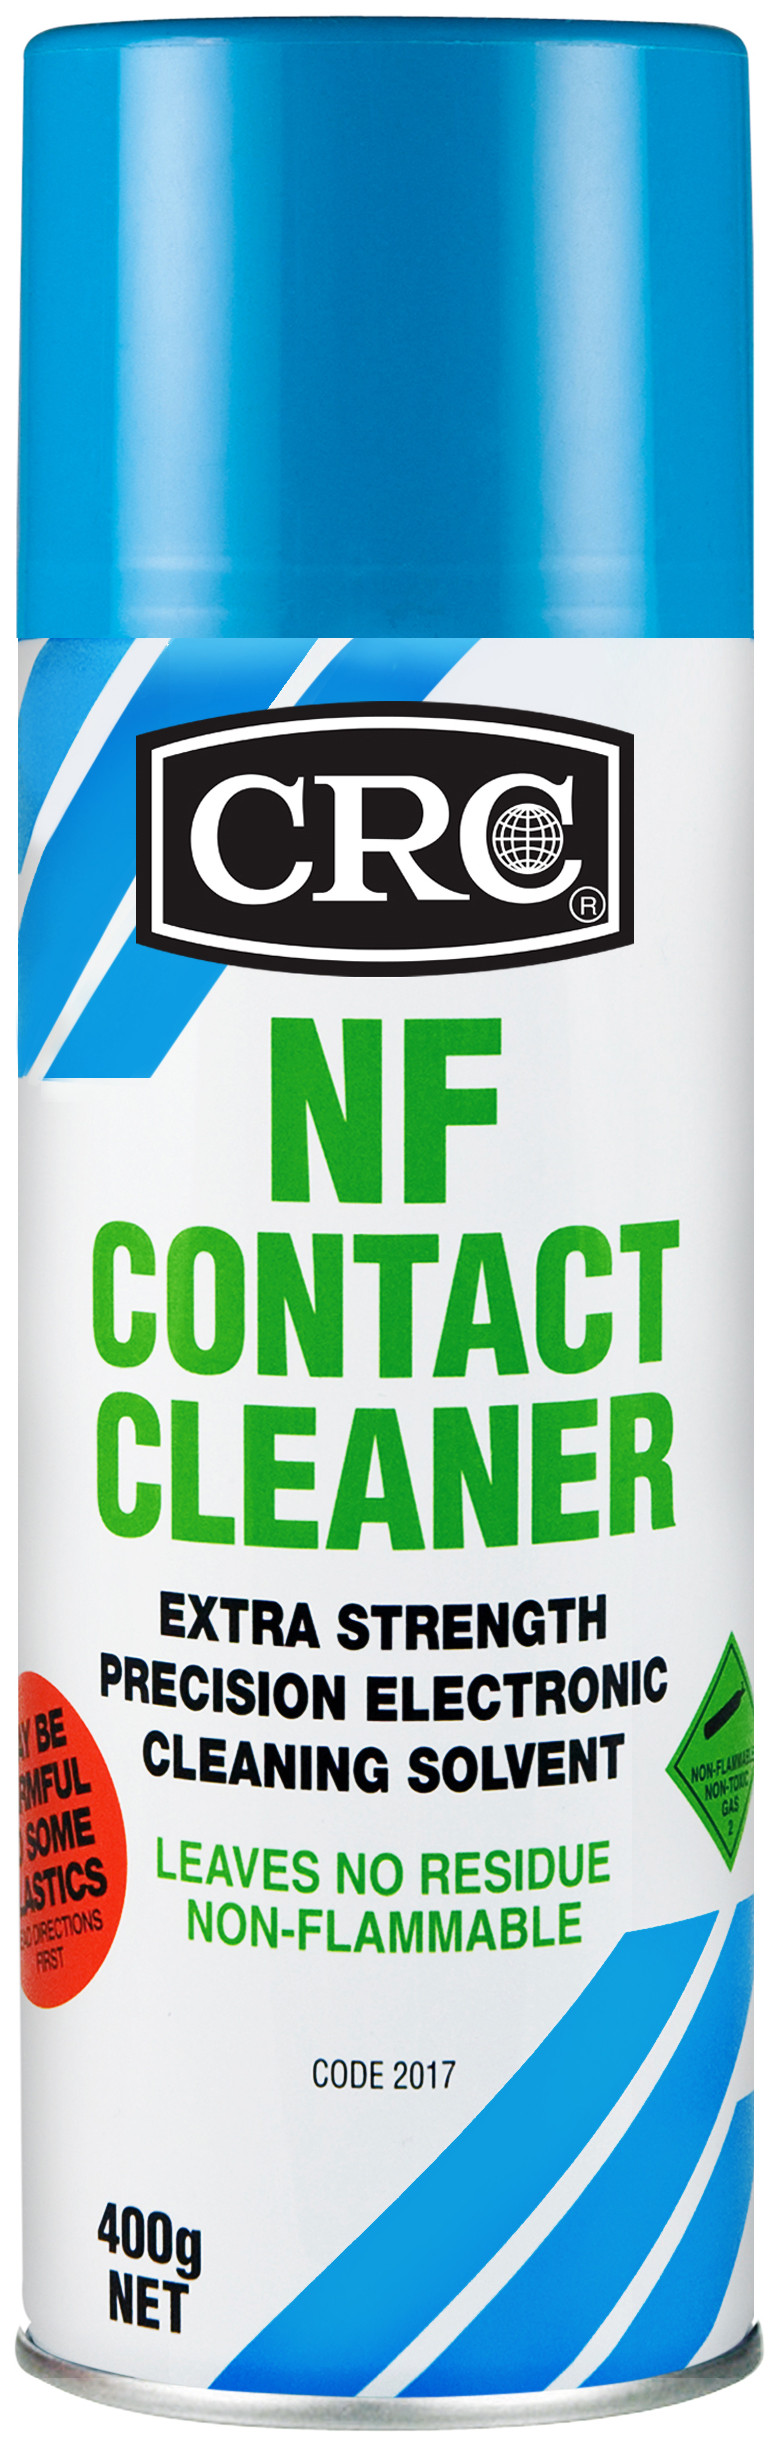 NF CONTACT CLEANER (Non – Flammable) Code: 2017